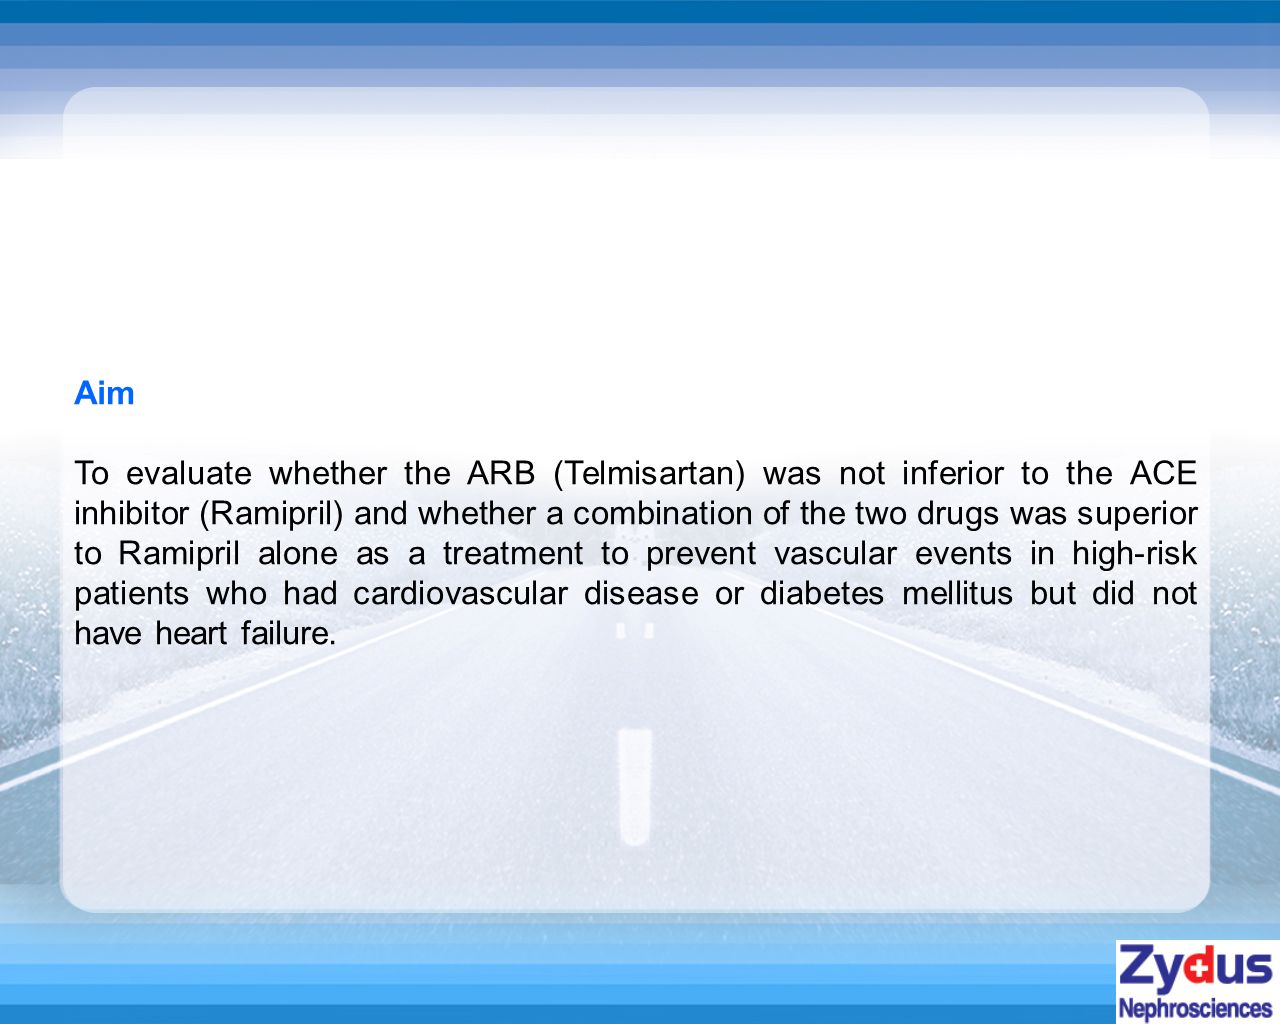 Aim To evaluate whether the ARB (Telmisartan) was not inferior to the ACE inhibitor (Ramipril) and whether a combination of the two drugs was superior to Ramipril alone as a treatment to prevent vascular events in high-risk patients who had cardiovascular disease or diabetes mellitus but did not have heart failure.